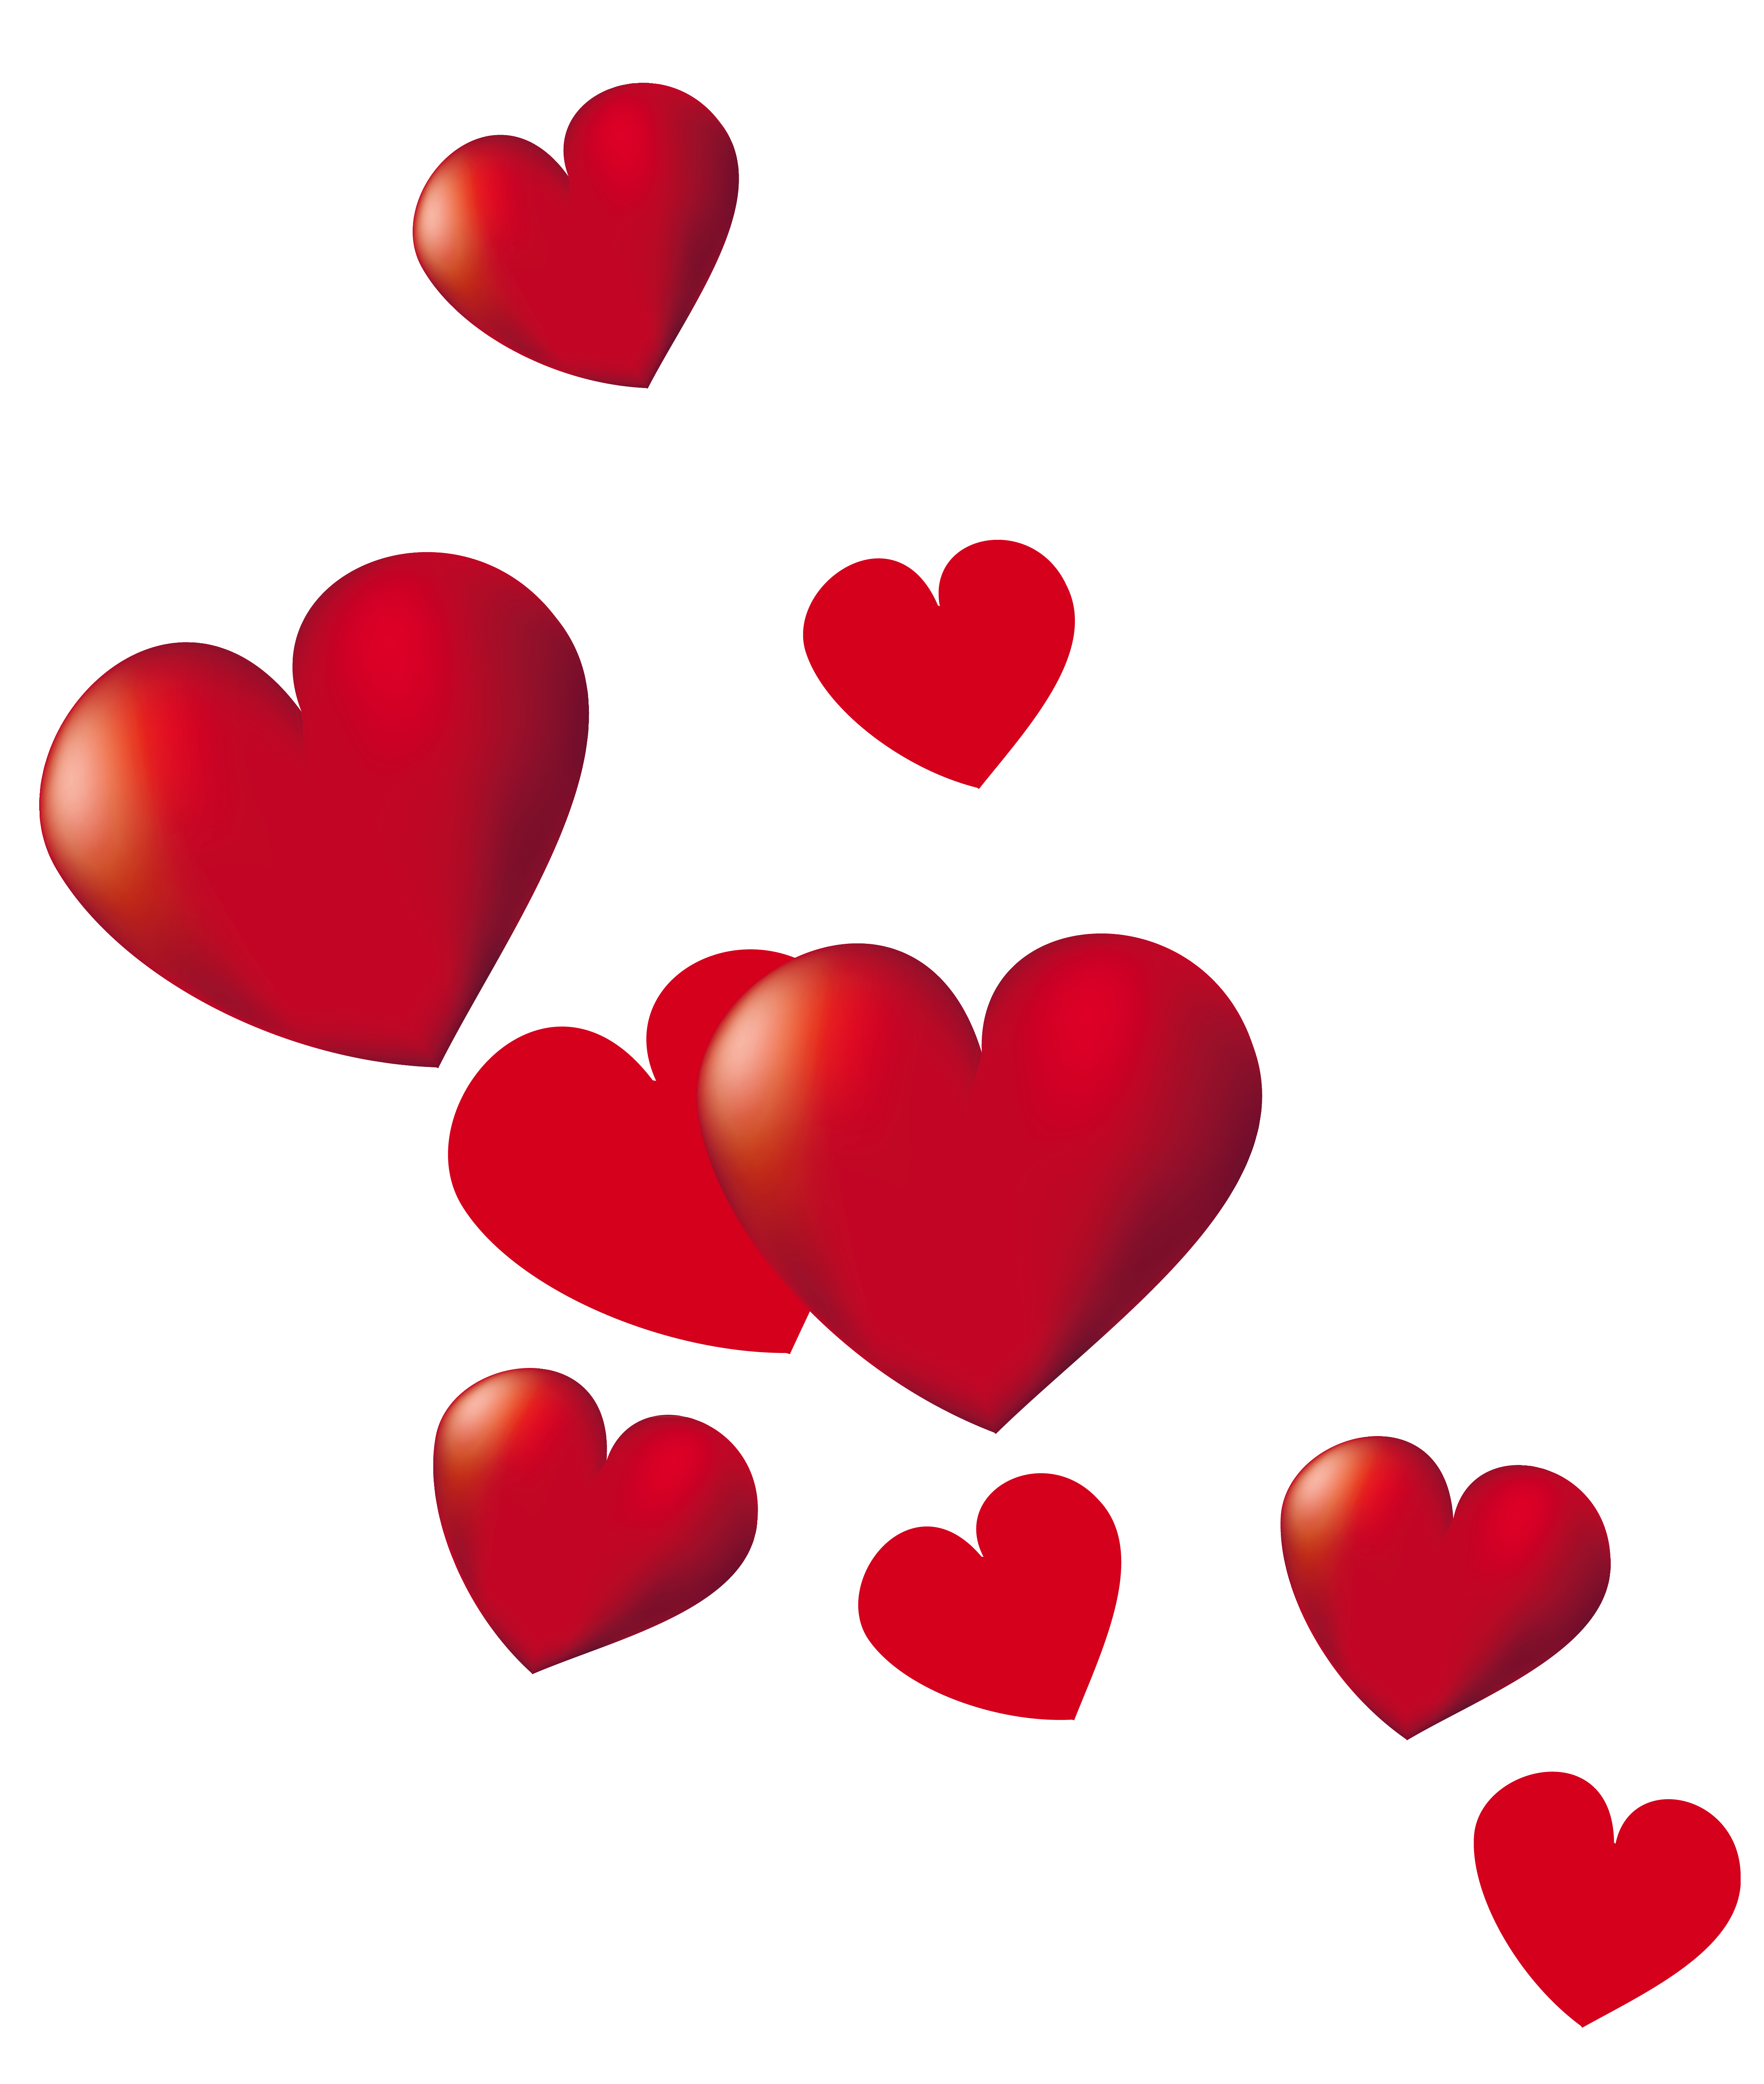 Free Vector Graphic Hearts Trail Valentine Romantic Free Png